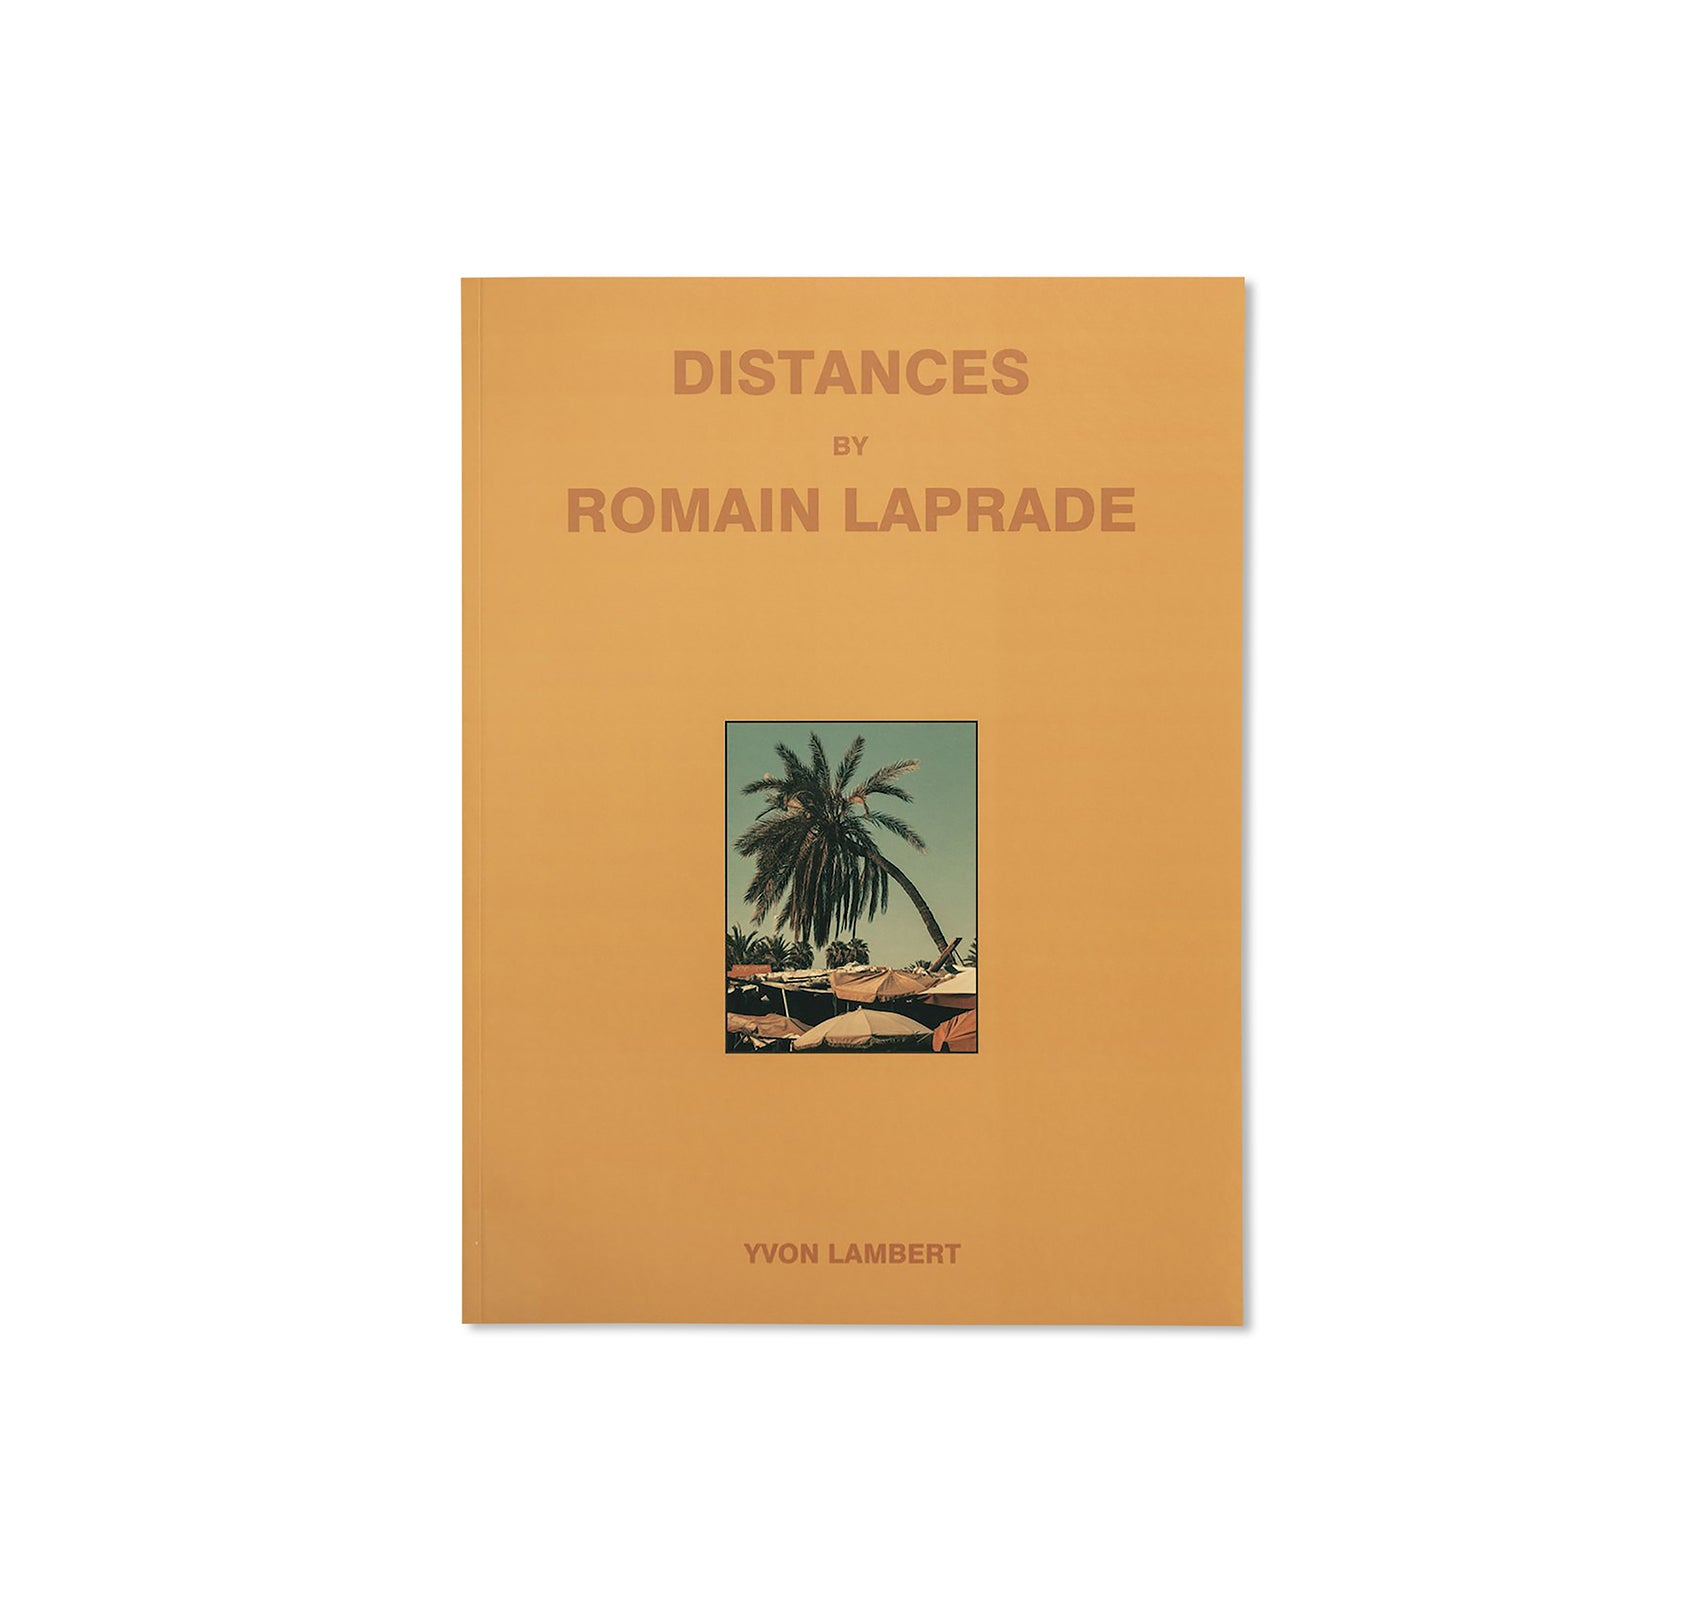 DISTANCES by Romain Laprade